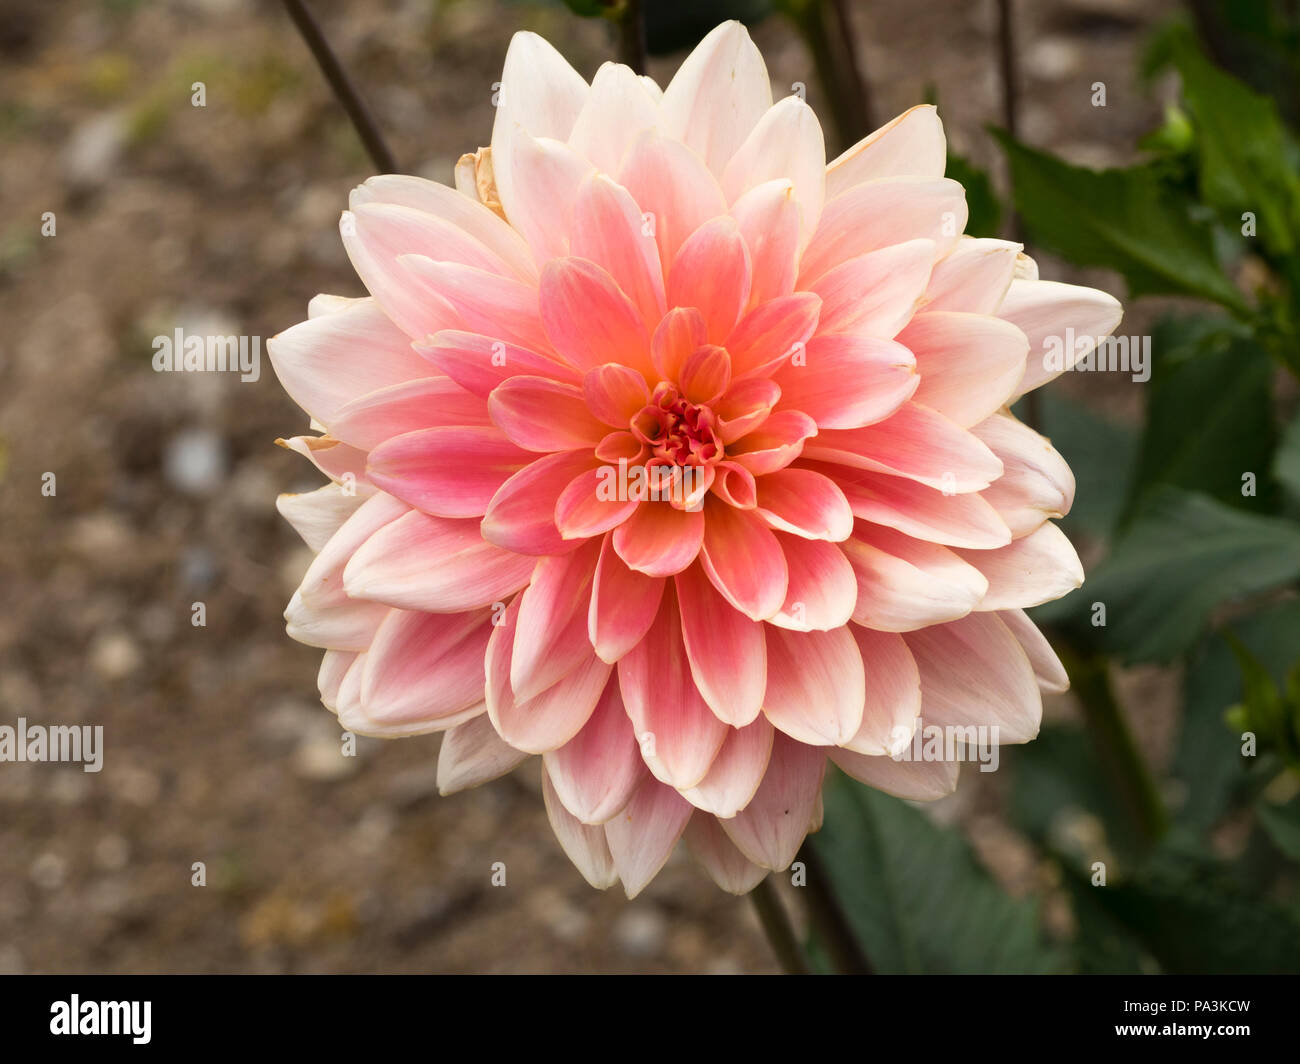 Pink, shading to yellow in the centre, flowers of the waterlily type dahlia, Dahlia 'Gerrie Hoek' - Stock Image